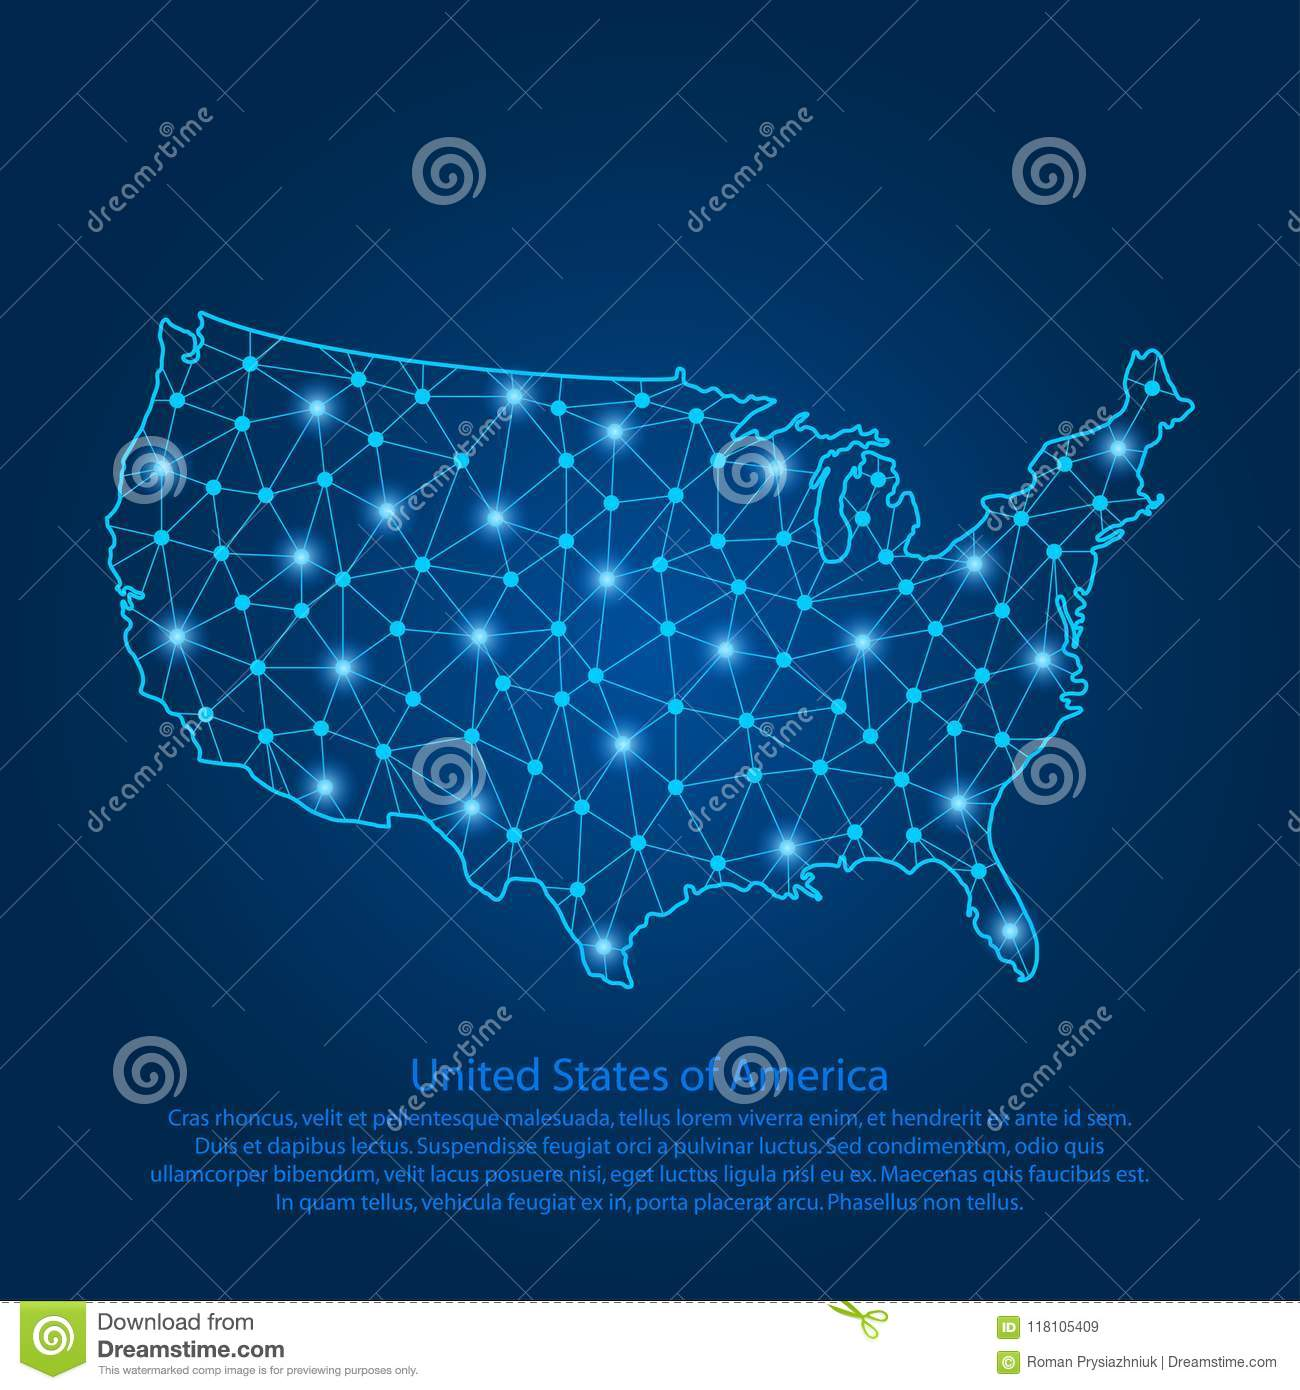 Abstract Map Of The USA Created From Lines, Bright Points ... on fcc line a map, voyage map, flight connections map, open map, robin hood map, professional map, happy map, no man's land map, pittsburgh metro map, earth drawings north america map, world map, the shining map, wireless connection map,